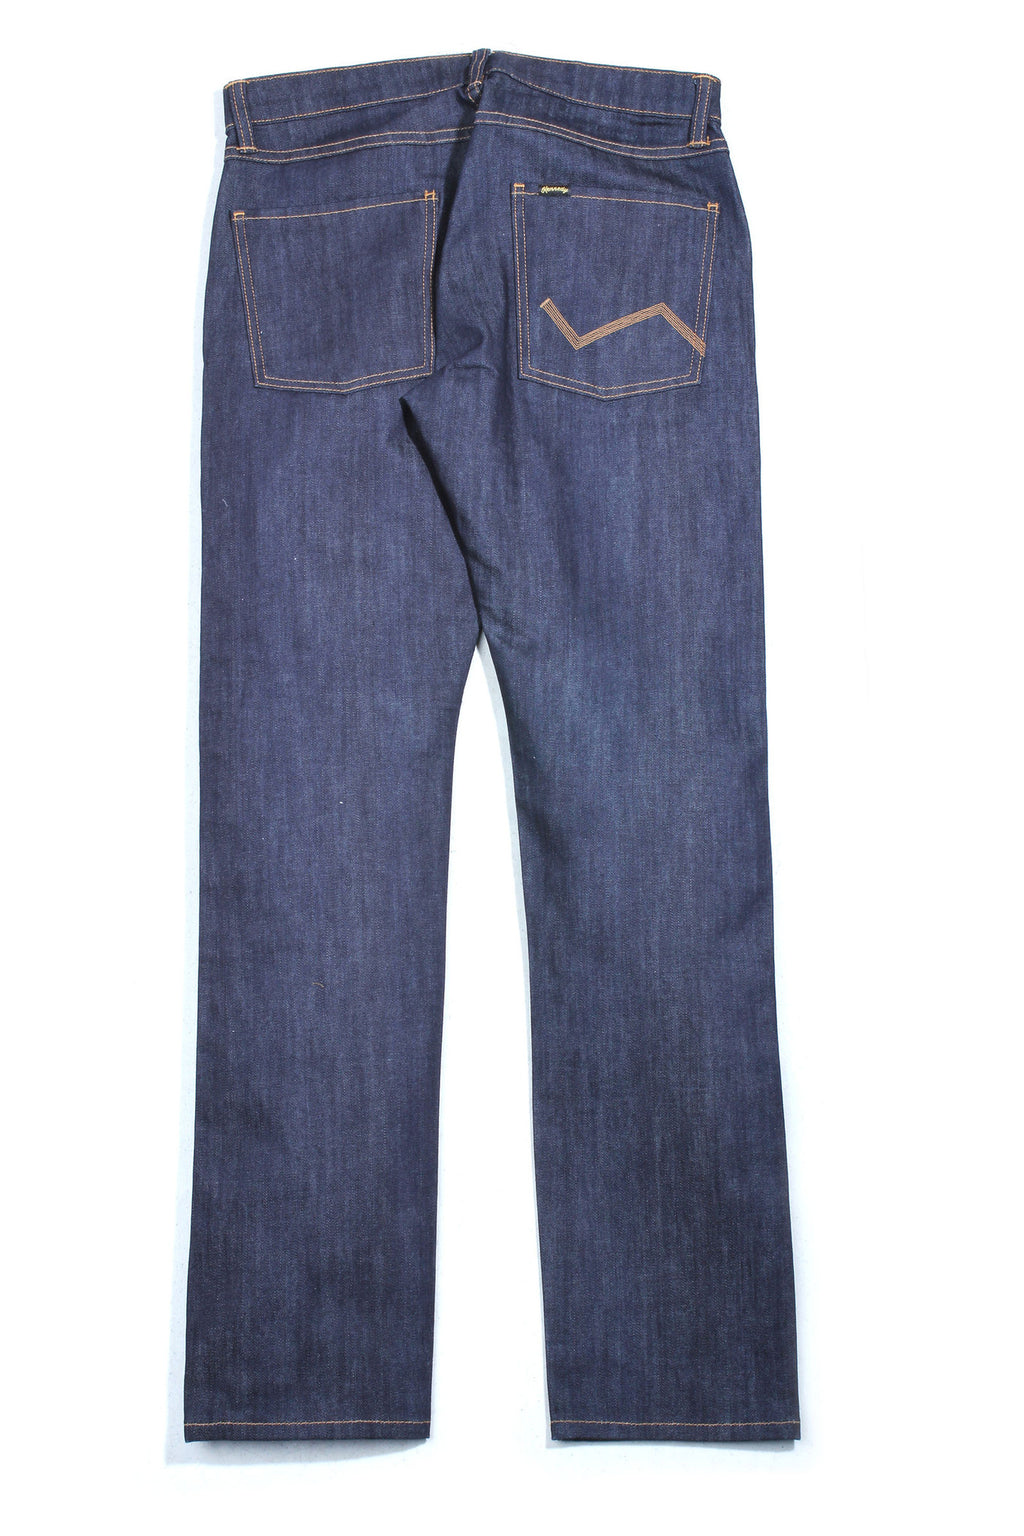 Kennedy Denim Z-Line Pants Raw Indigo Pants Ascent Wear - 2